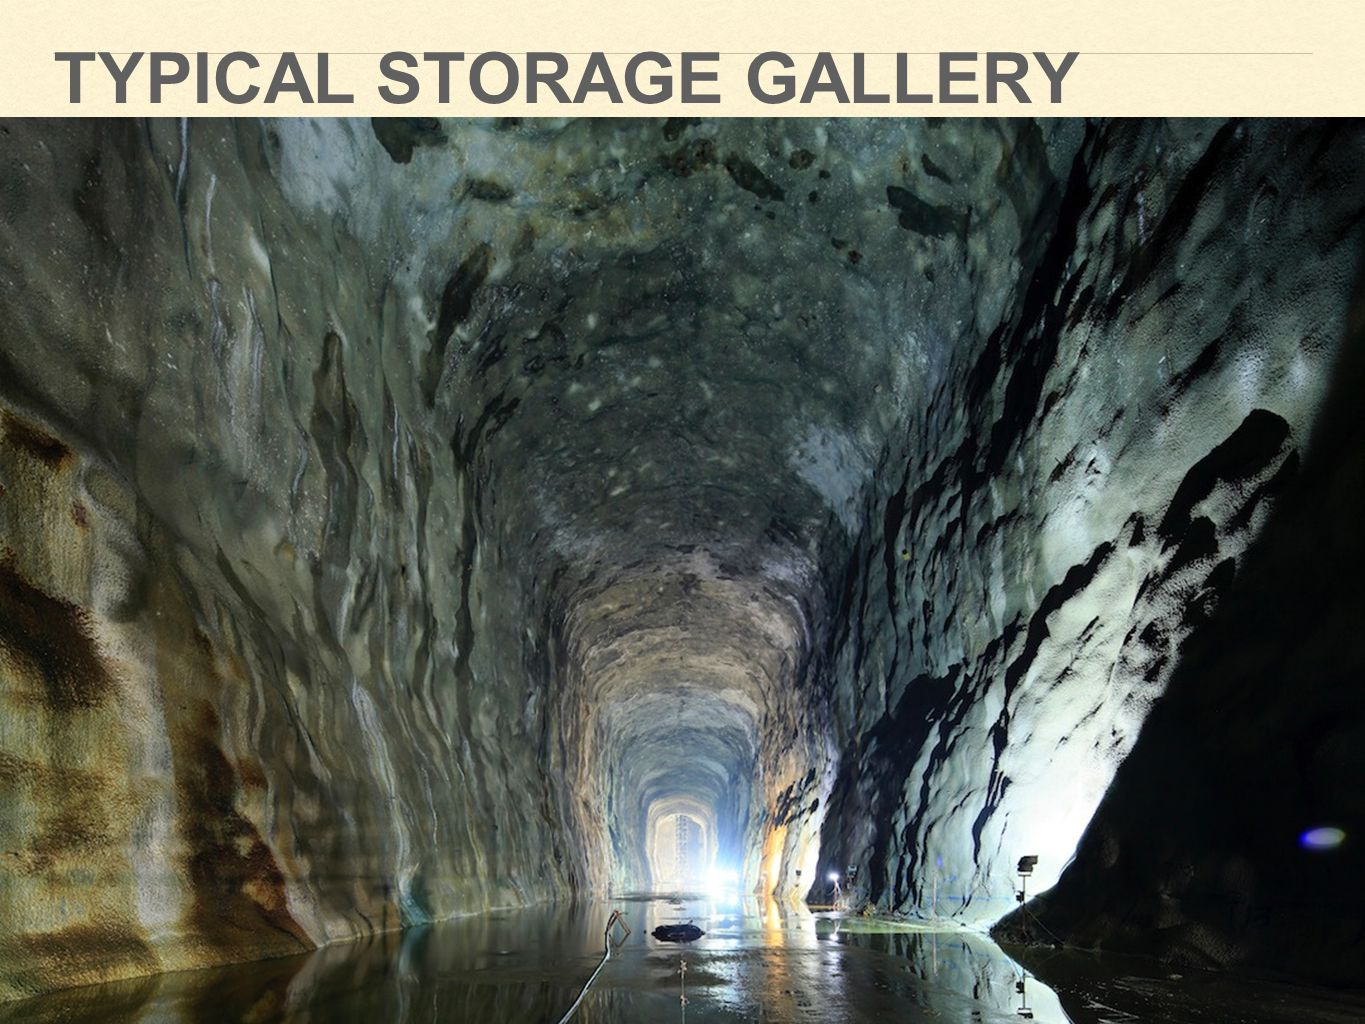 Typical storage gallery